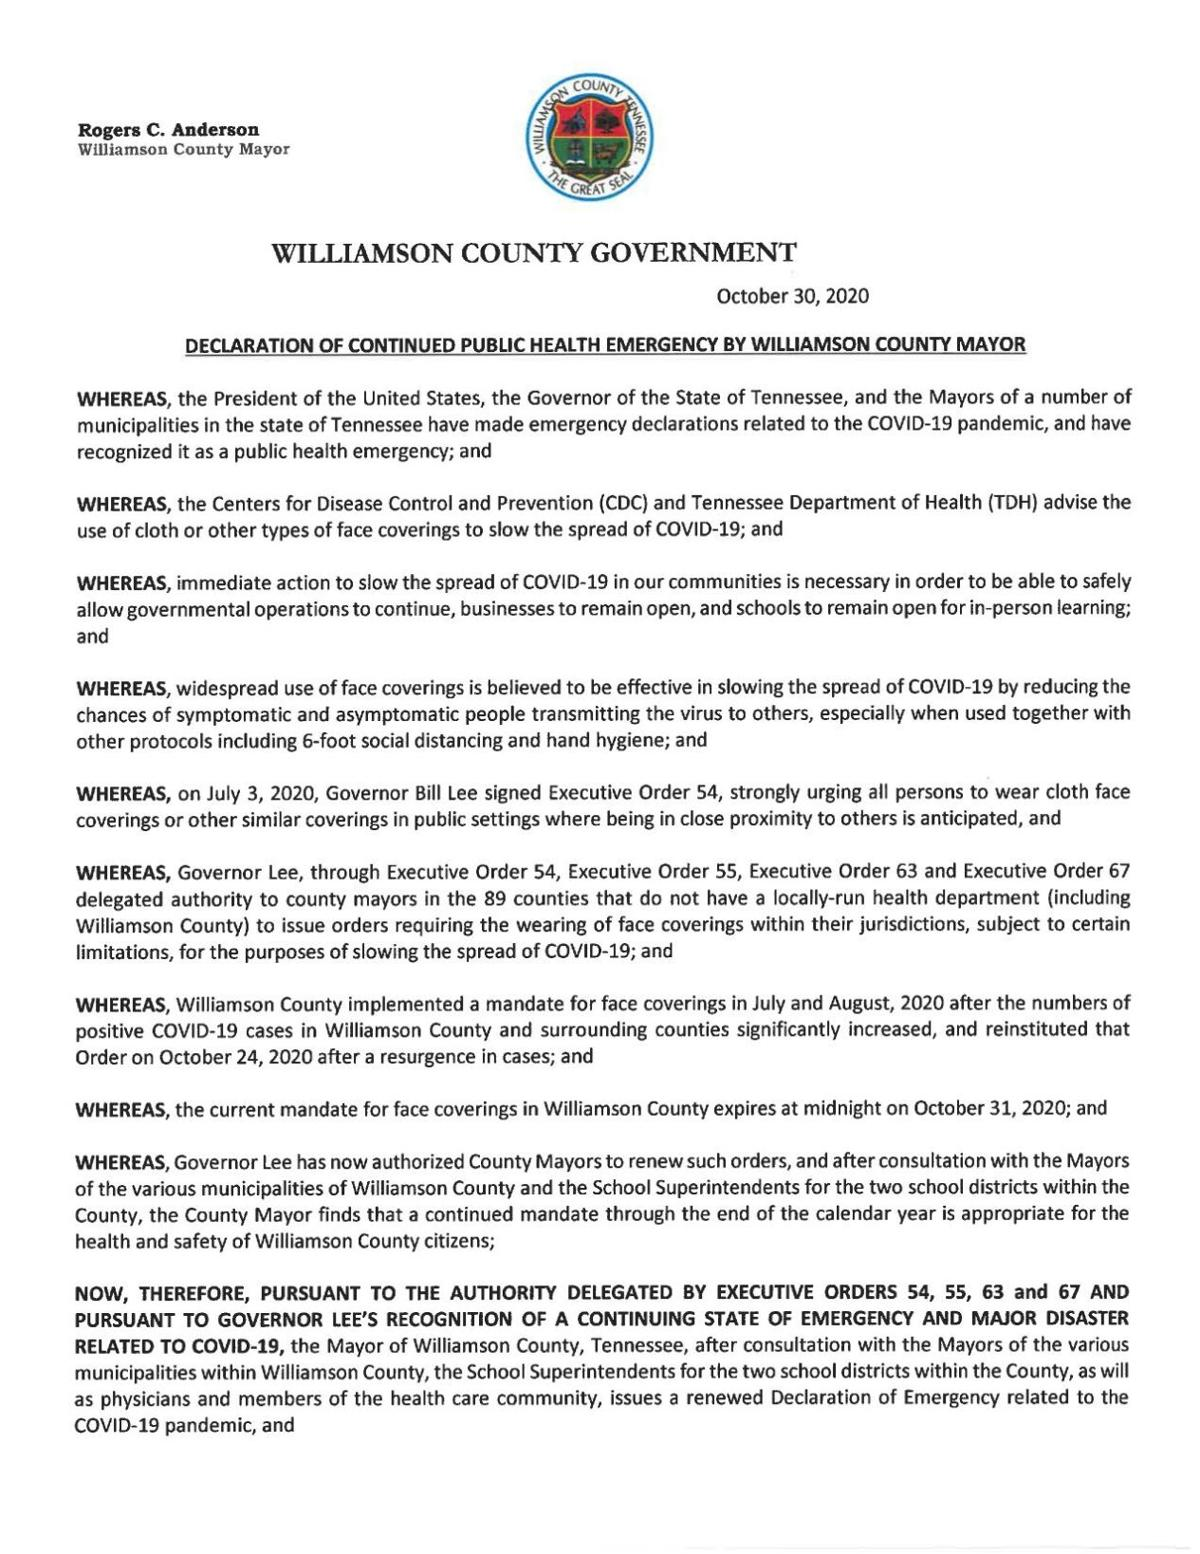 Williamson County Declaration Oct. 30, 2020